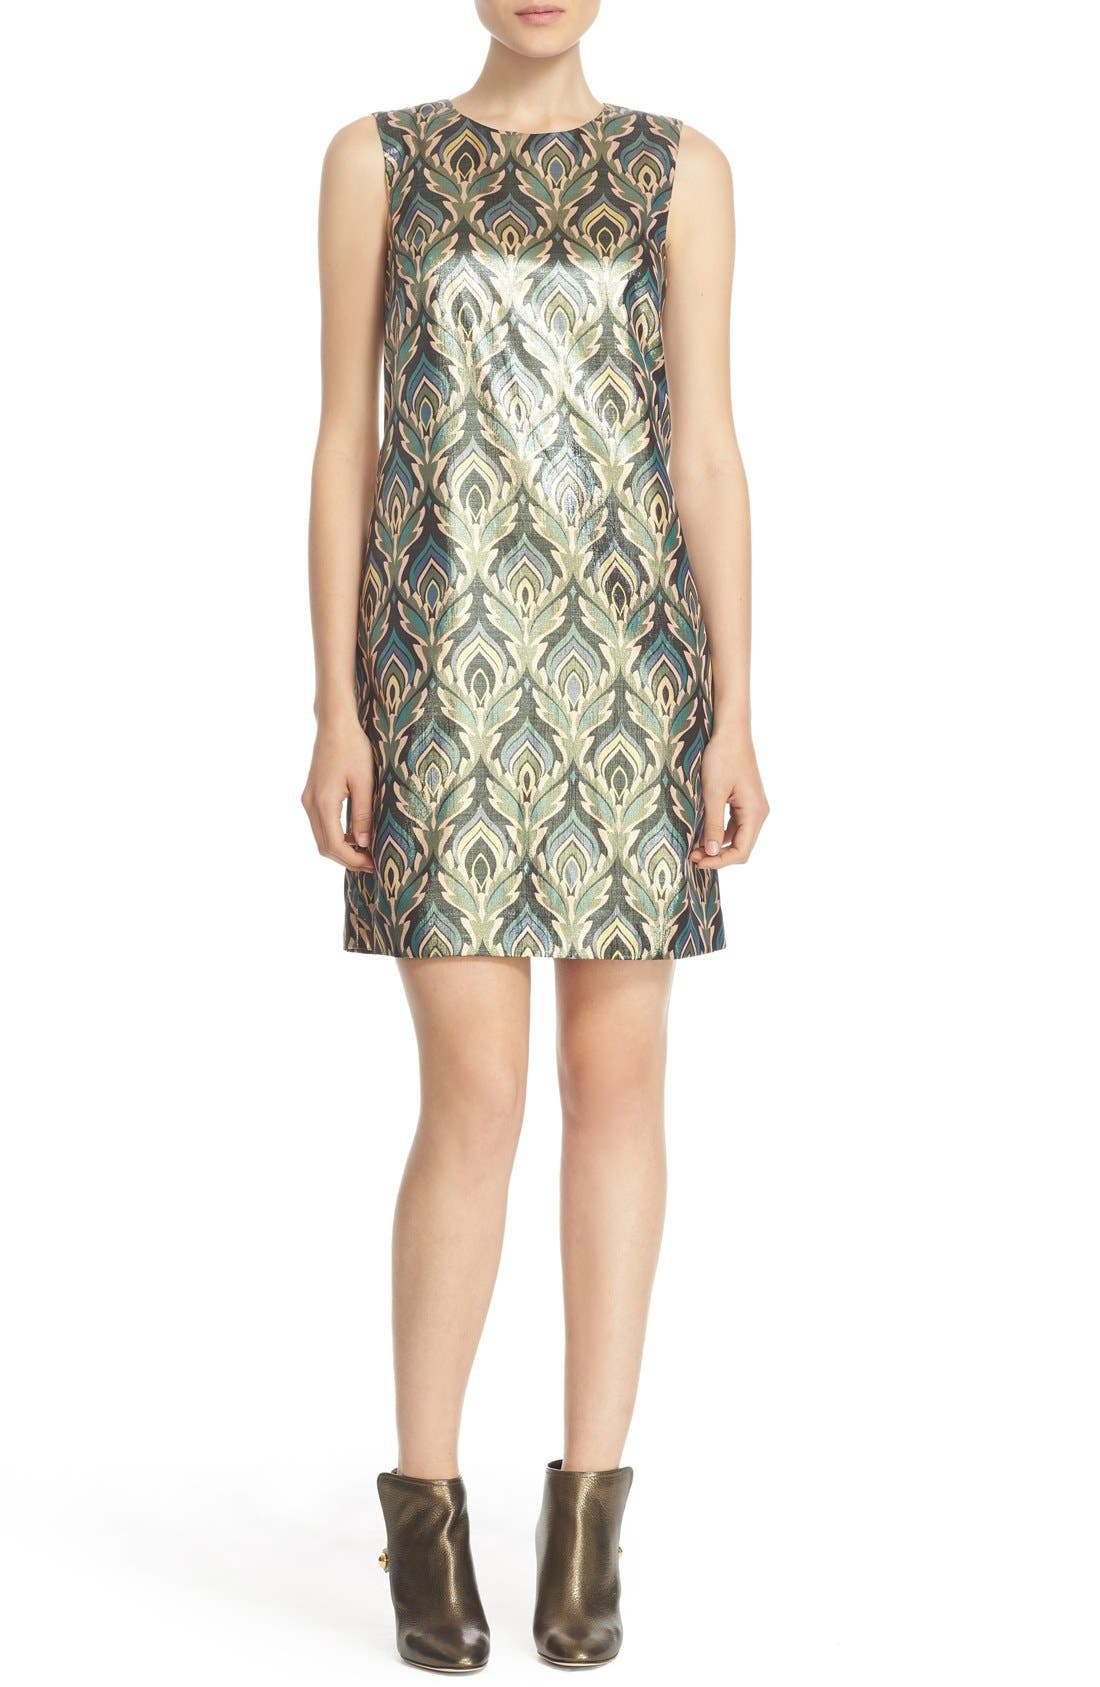 M Missoni 'Flame' Metallic Shift Dress